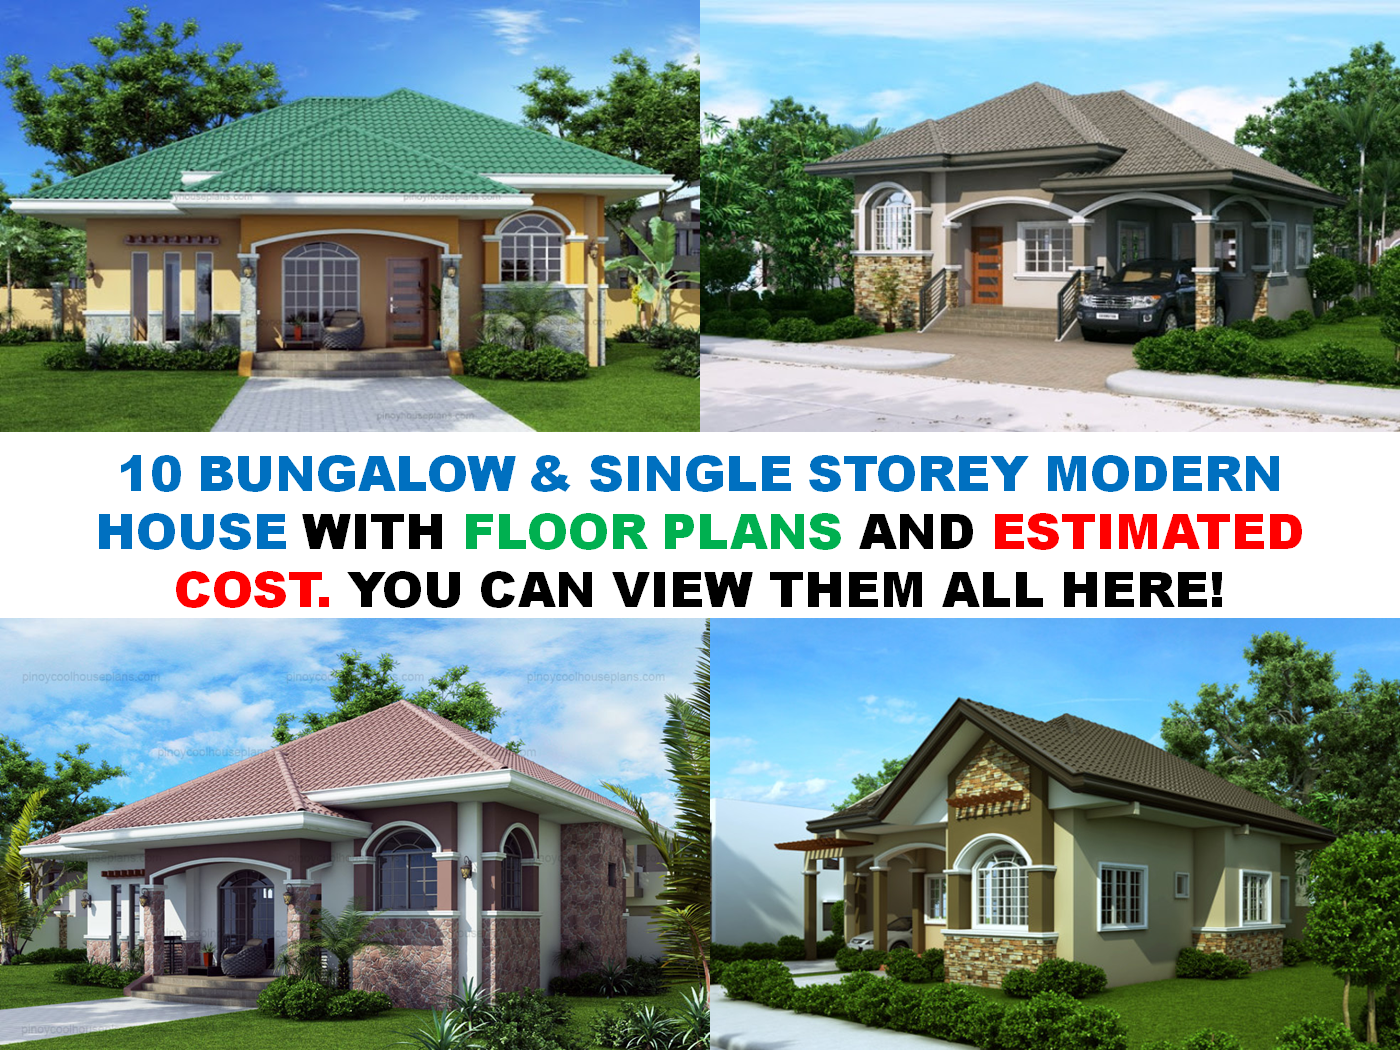 10 bungalow single story modern house with floor plans for Single storey bungalow design